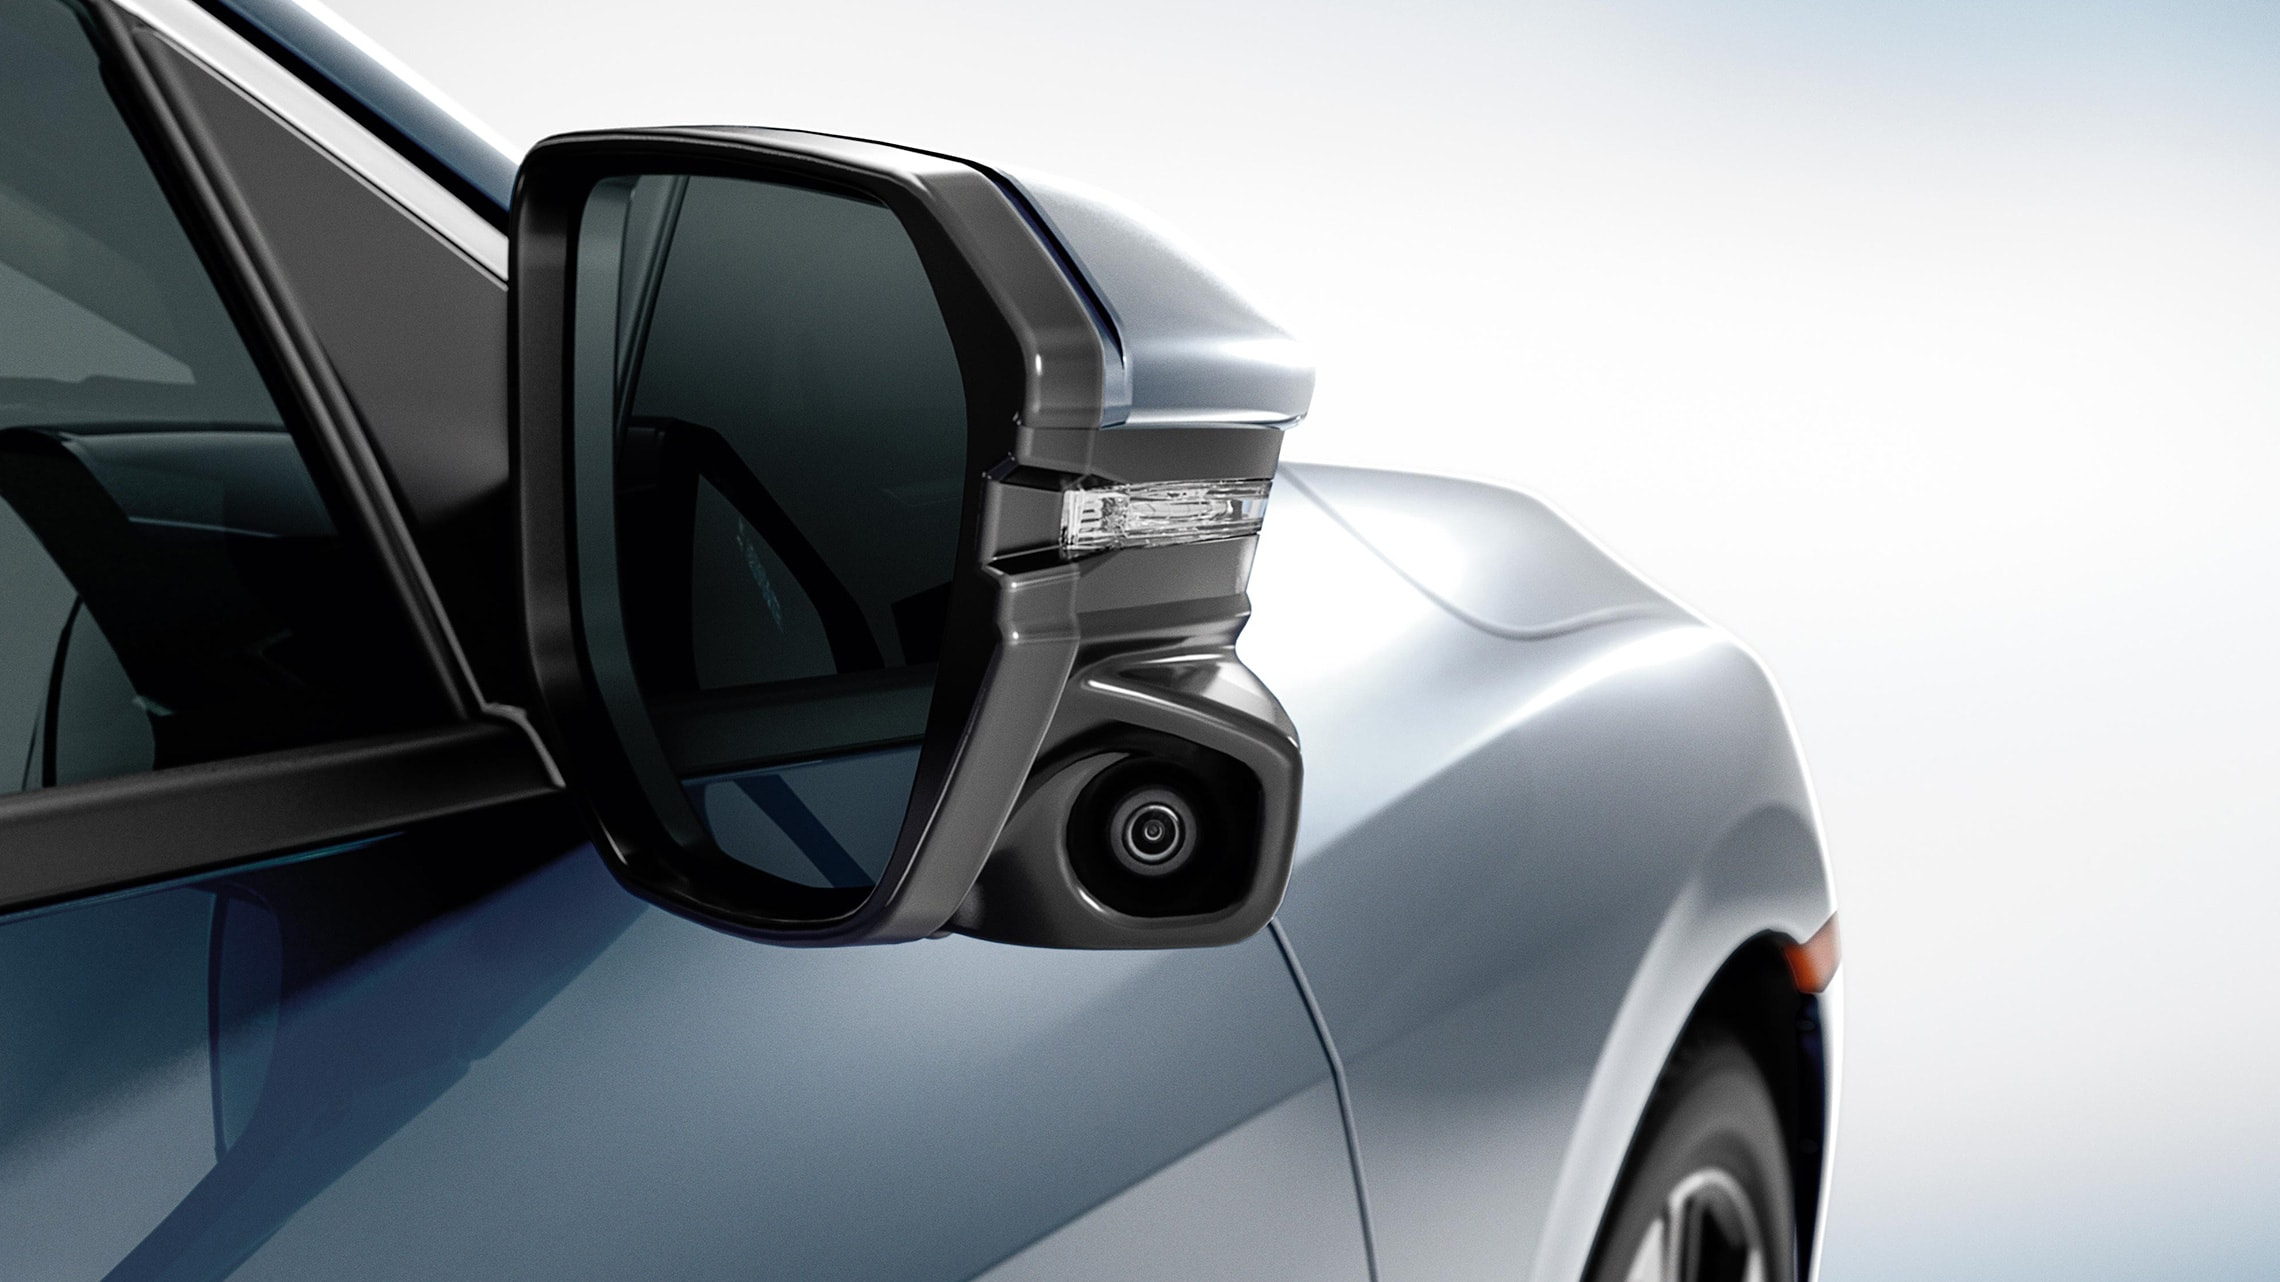 Detail of Honda LaneWatch™ camera on passenger-side rear view mirror of the 2020 Honda Civic Touring Coupe.